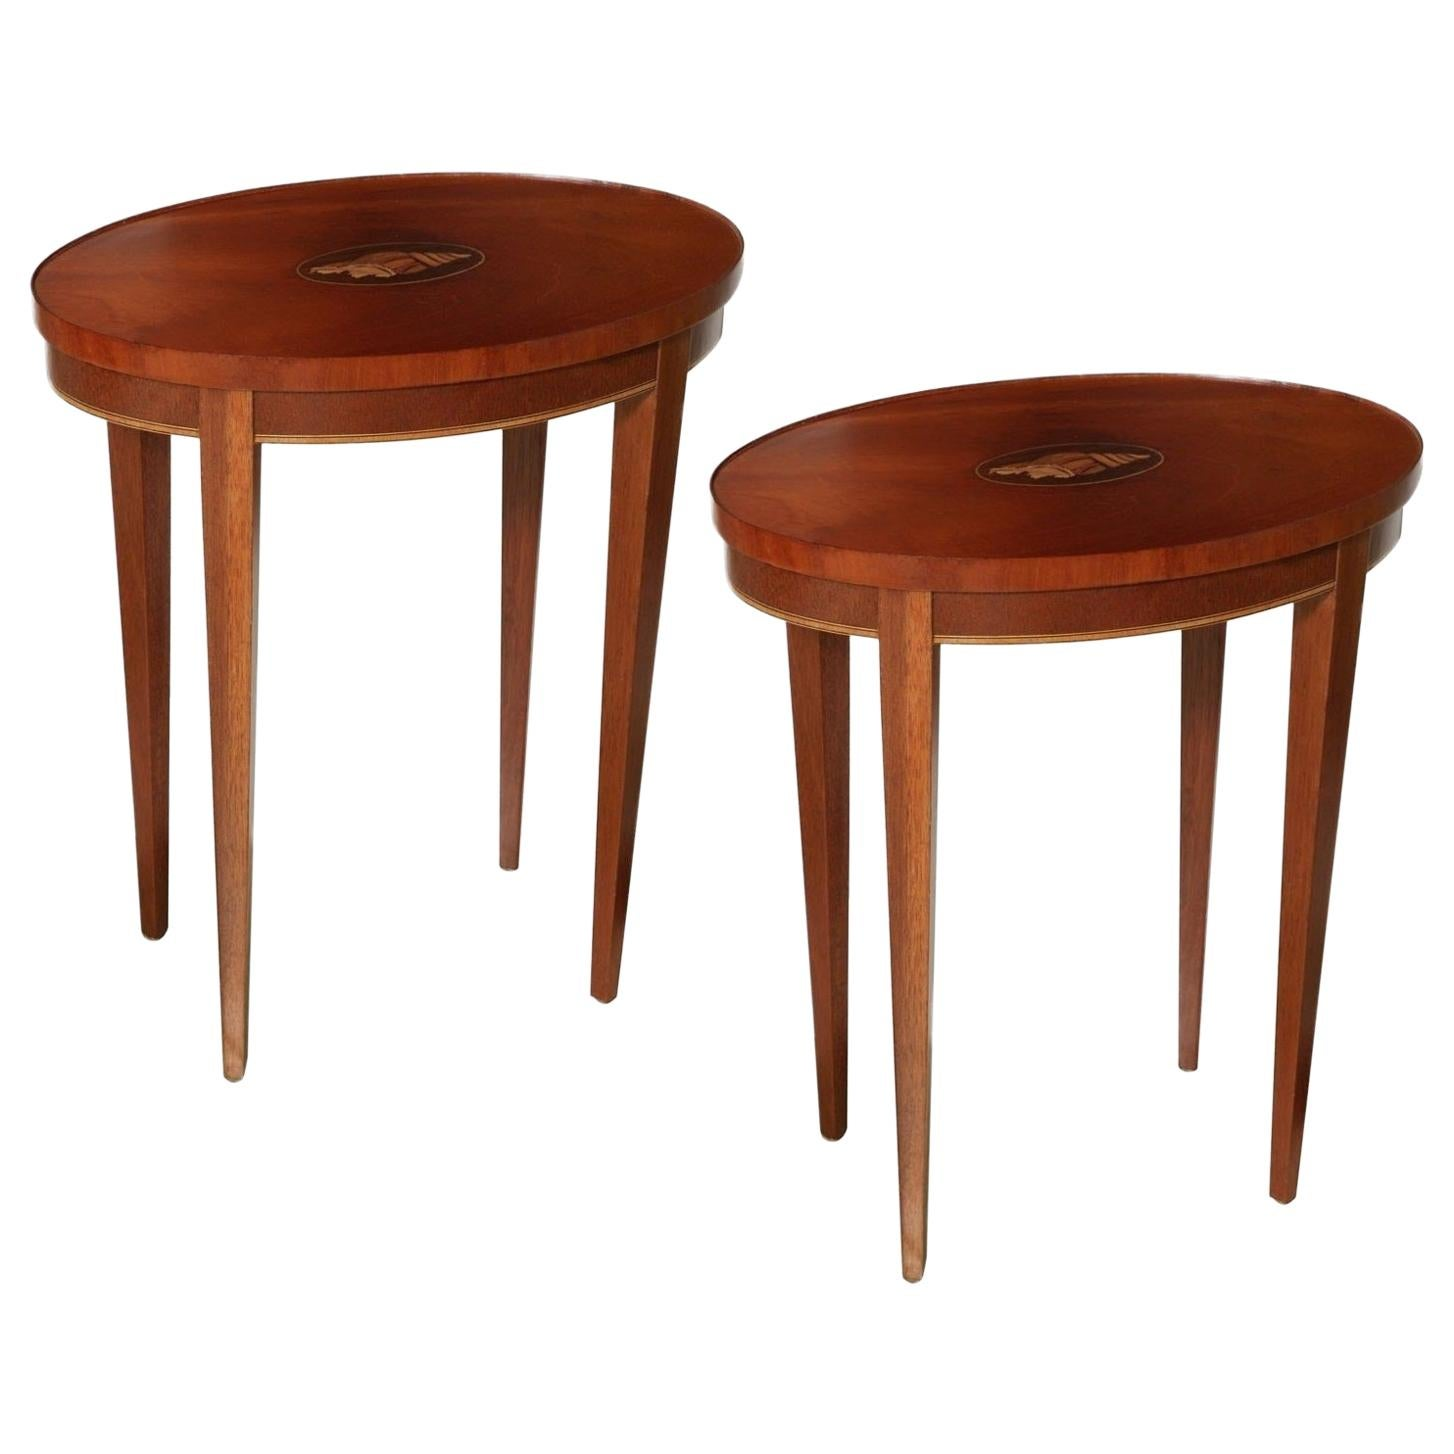 """21/"""" Round Table w Inlaid Brass Work Hand Carved Coffee Round Table Foldable New"""